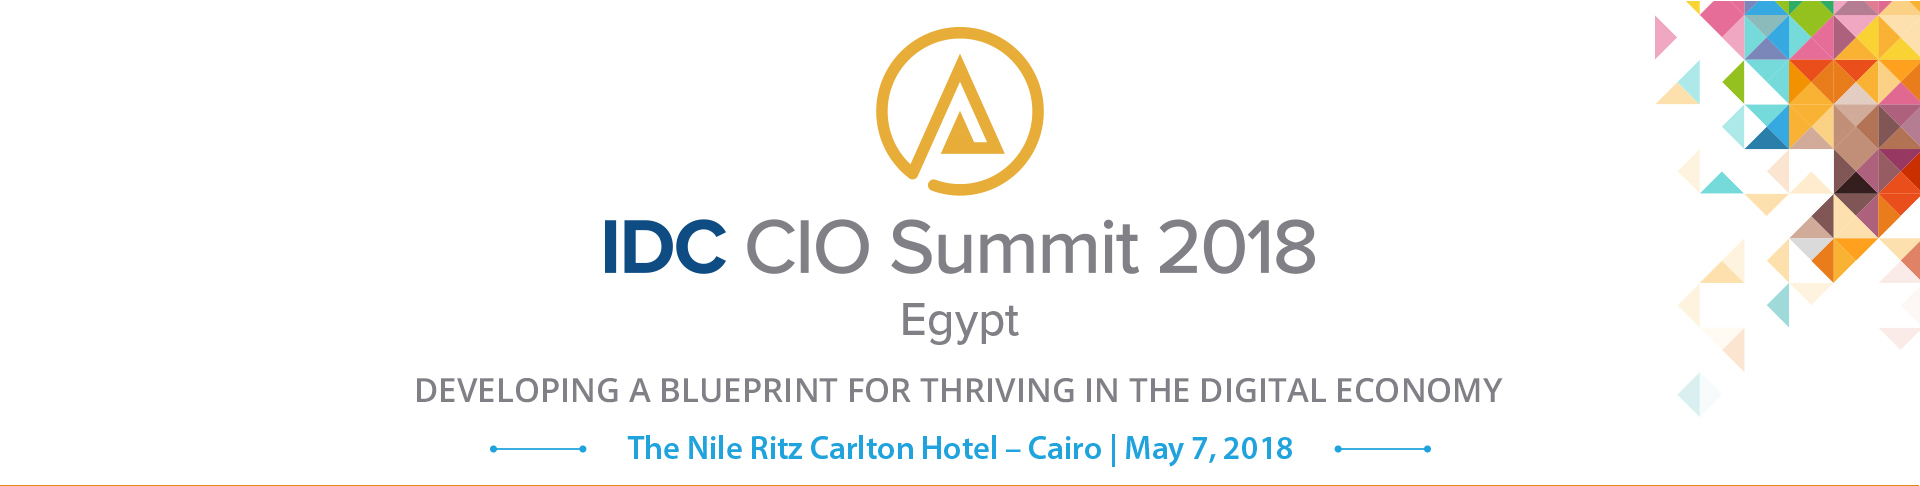 Middle east idc cio summit 2018 malvernweather